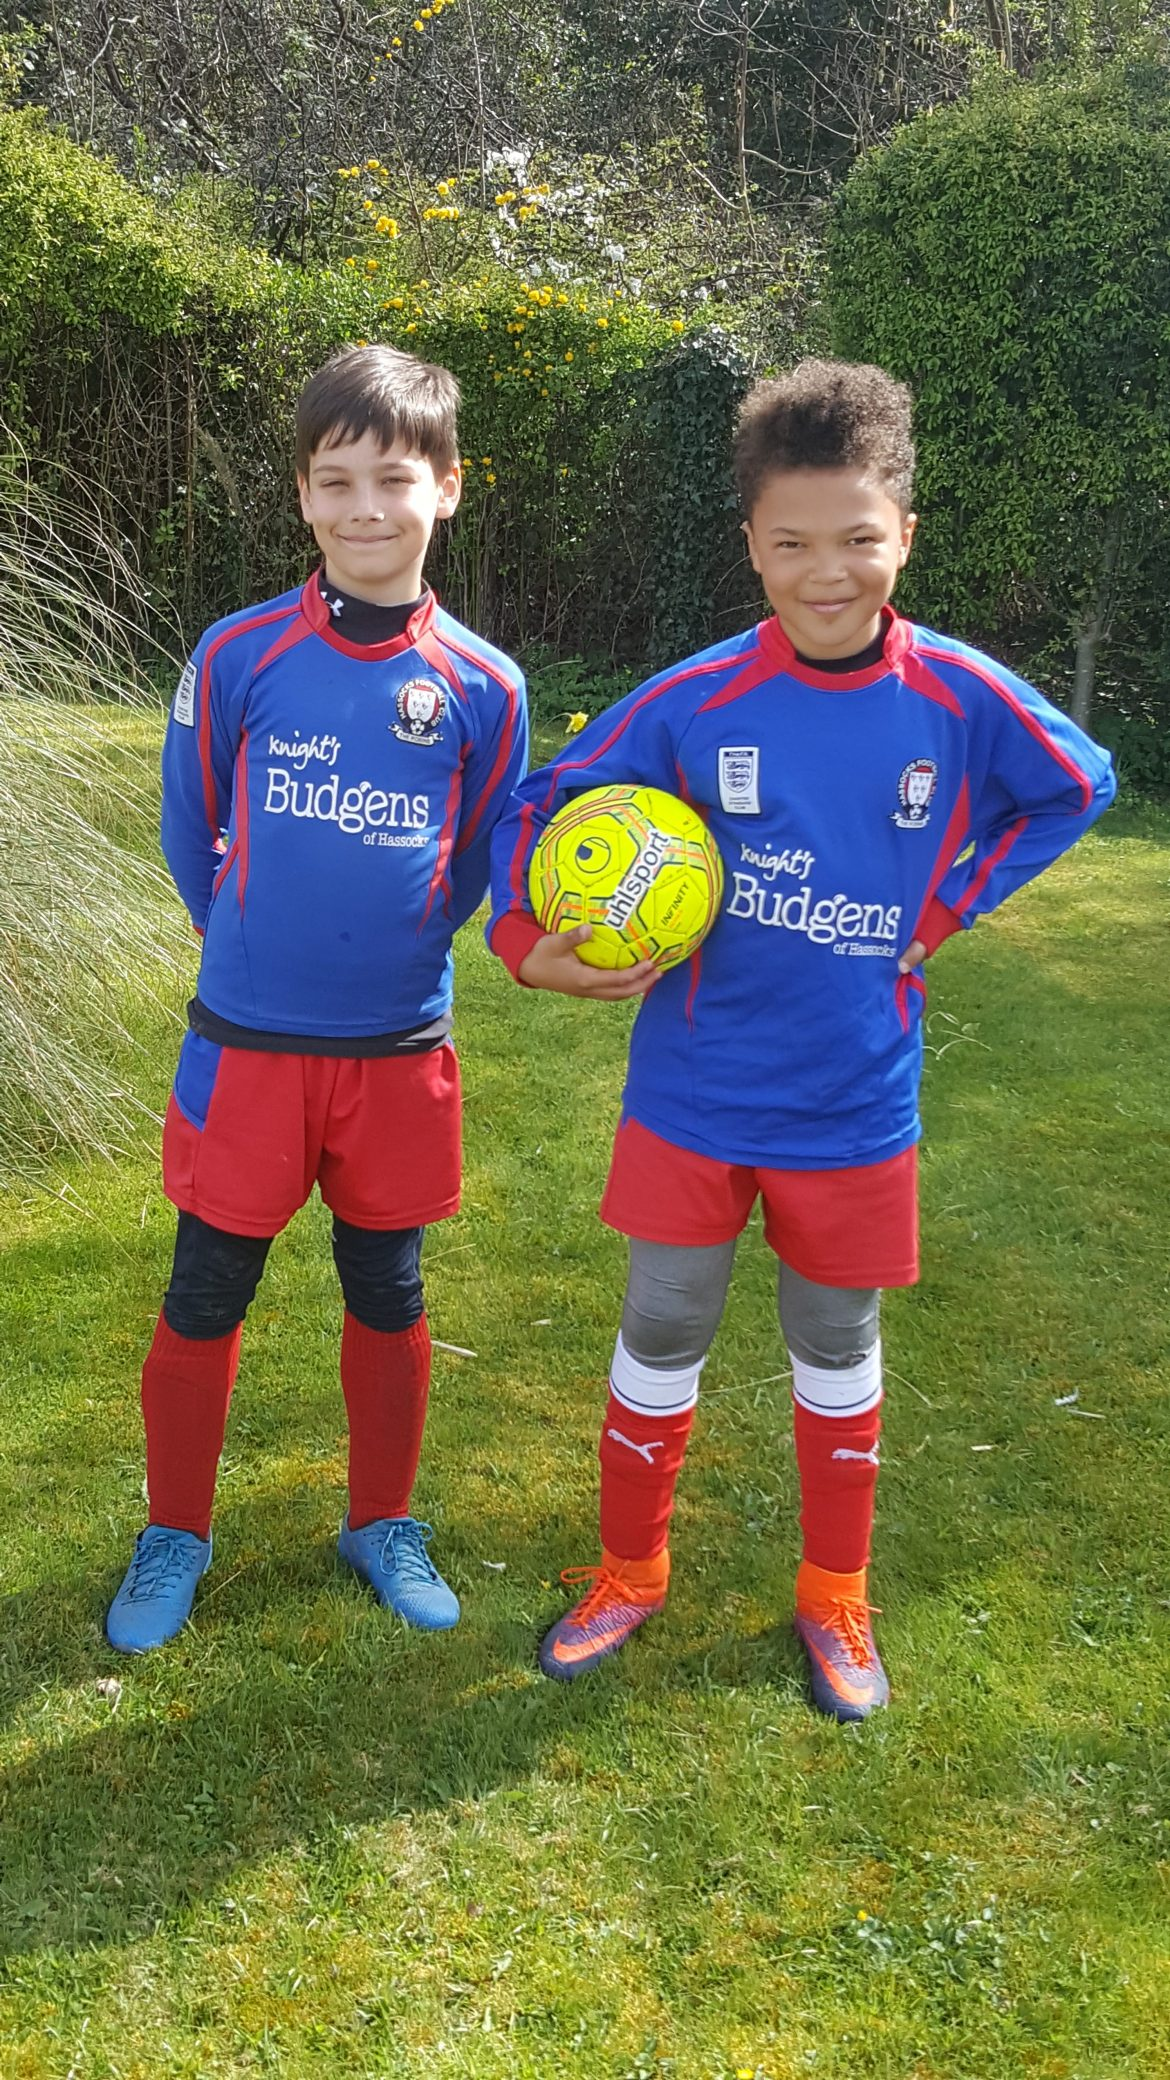 Hassocks U10's Hawks through to semi-final of the HDYFL Cup